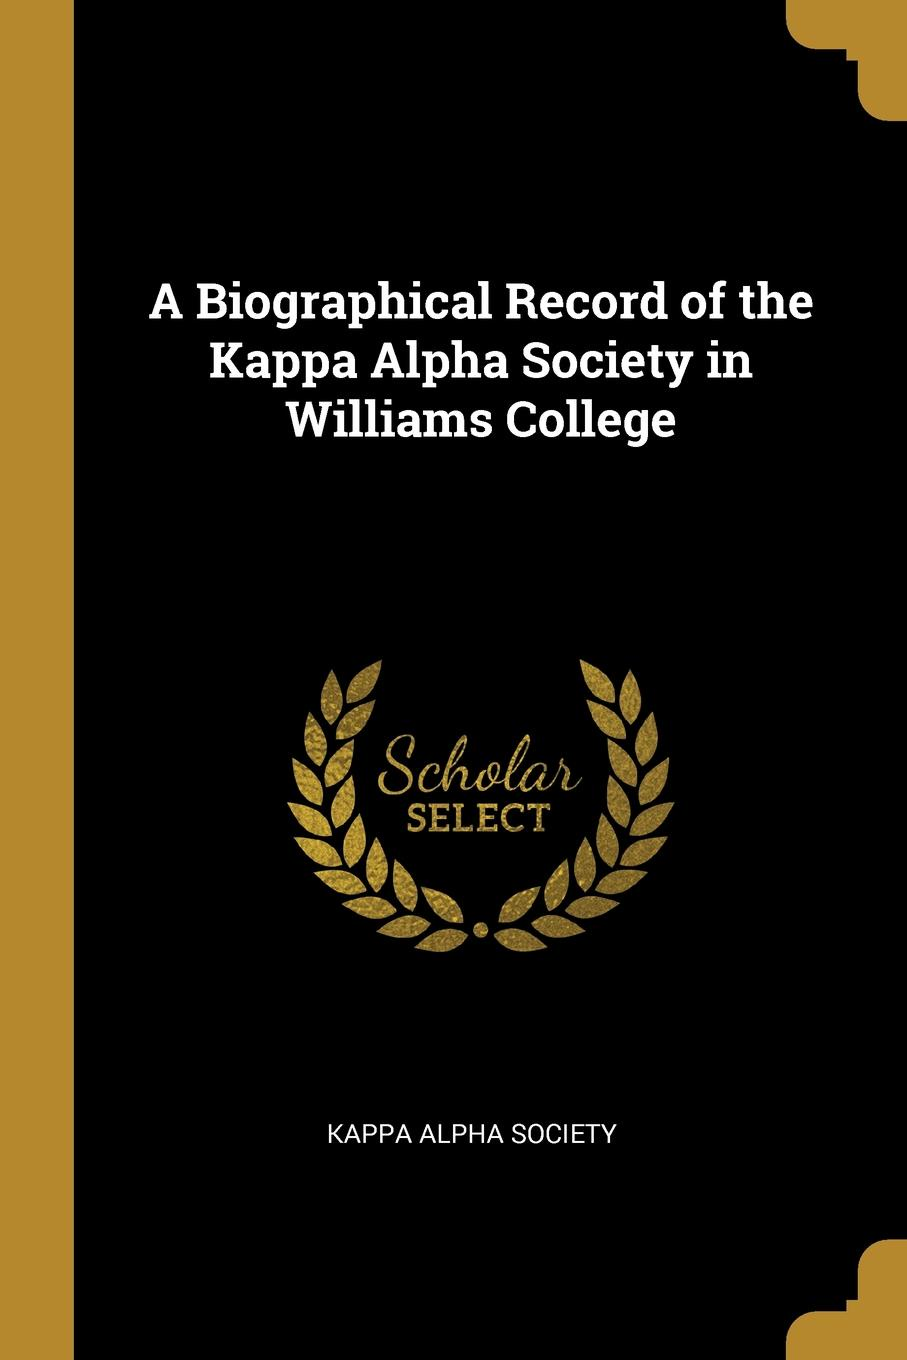 Kappa Alpha Society A Biographical Record of the Kappa Alpha Society in Williams College kappa alpha massachusetts alpha a biographical record of the kappa alpha society in williams college